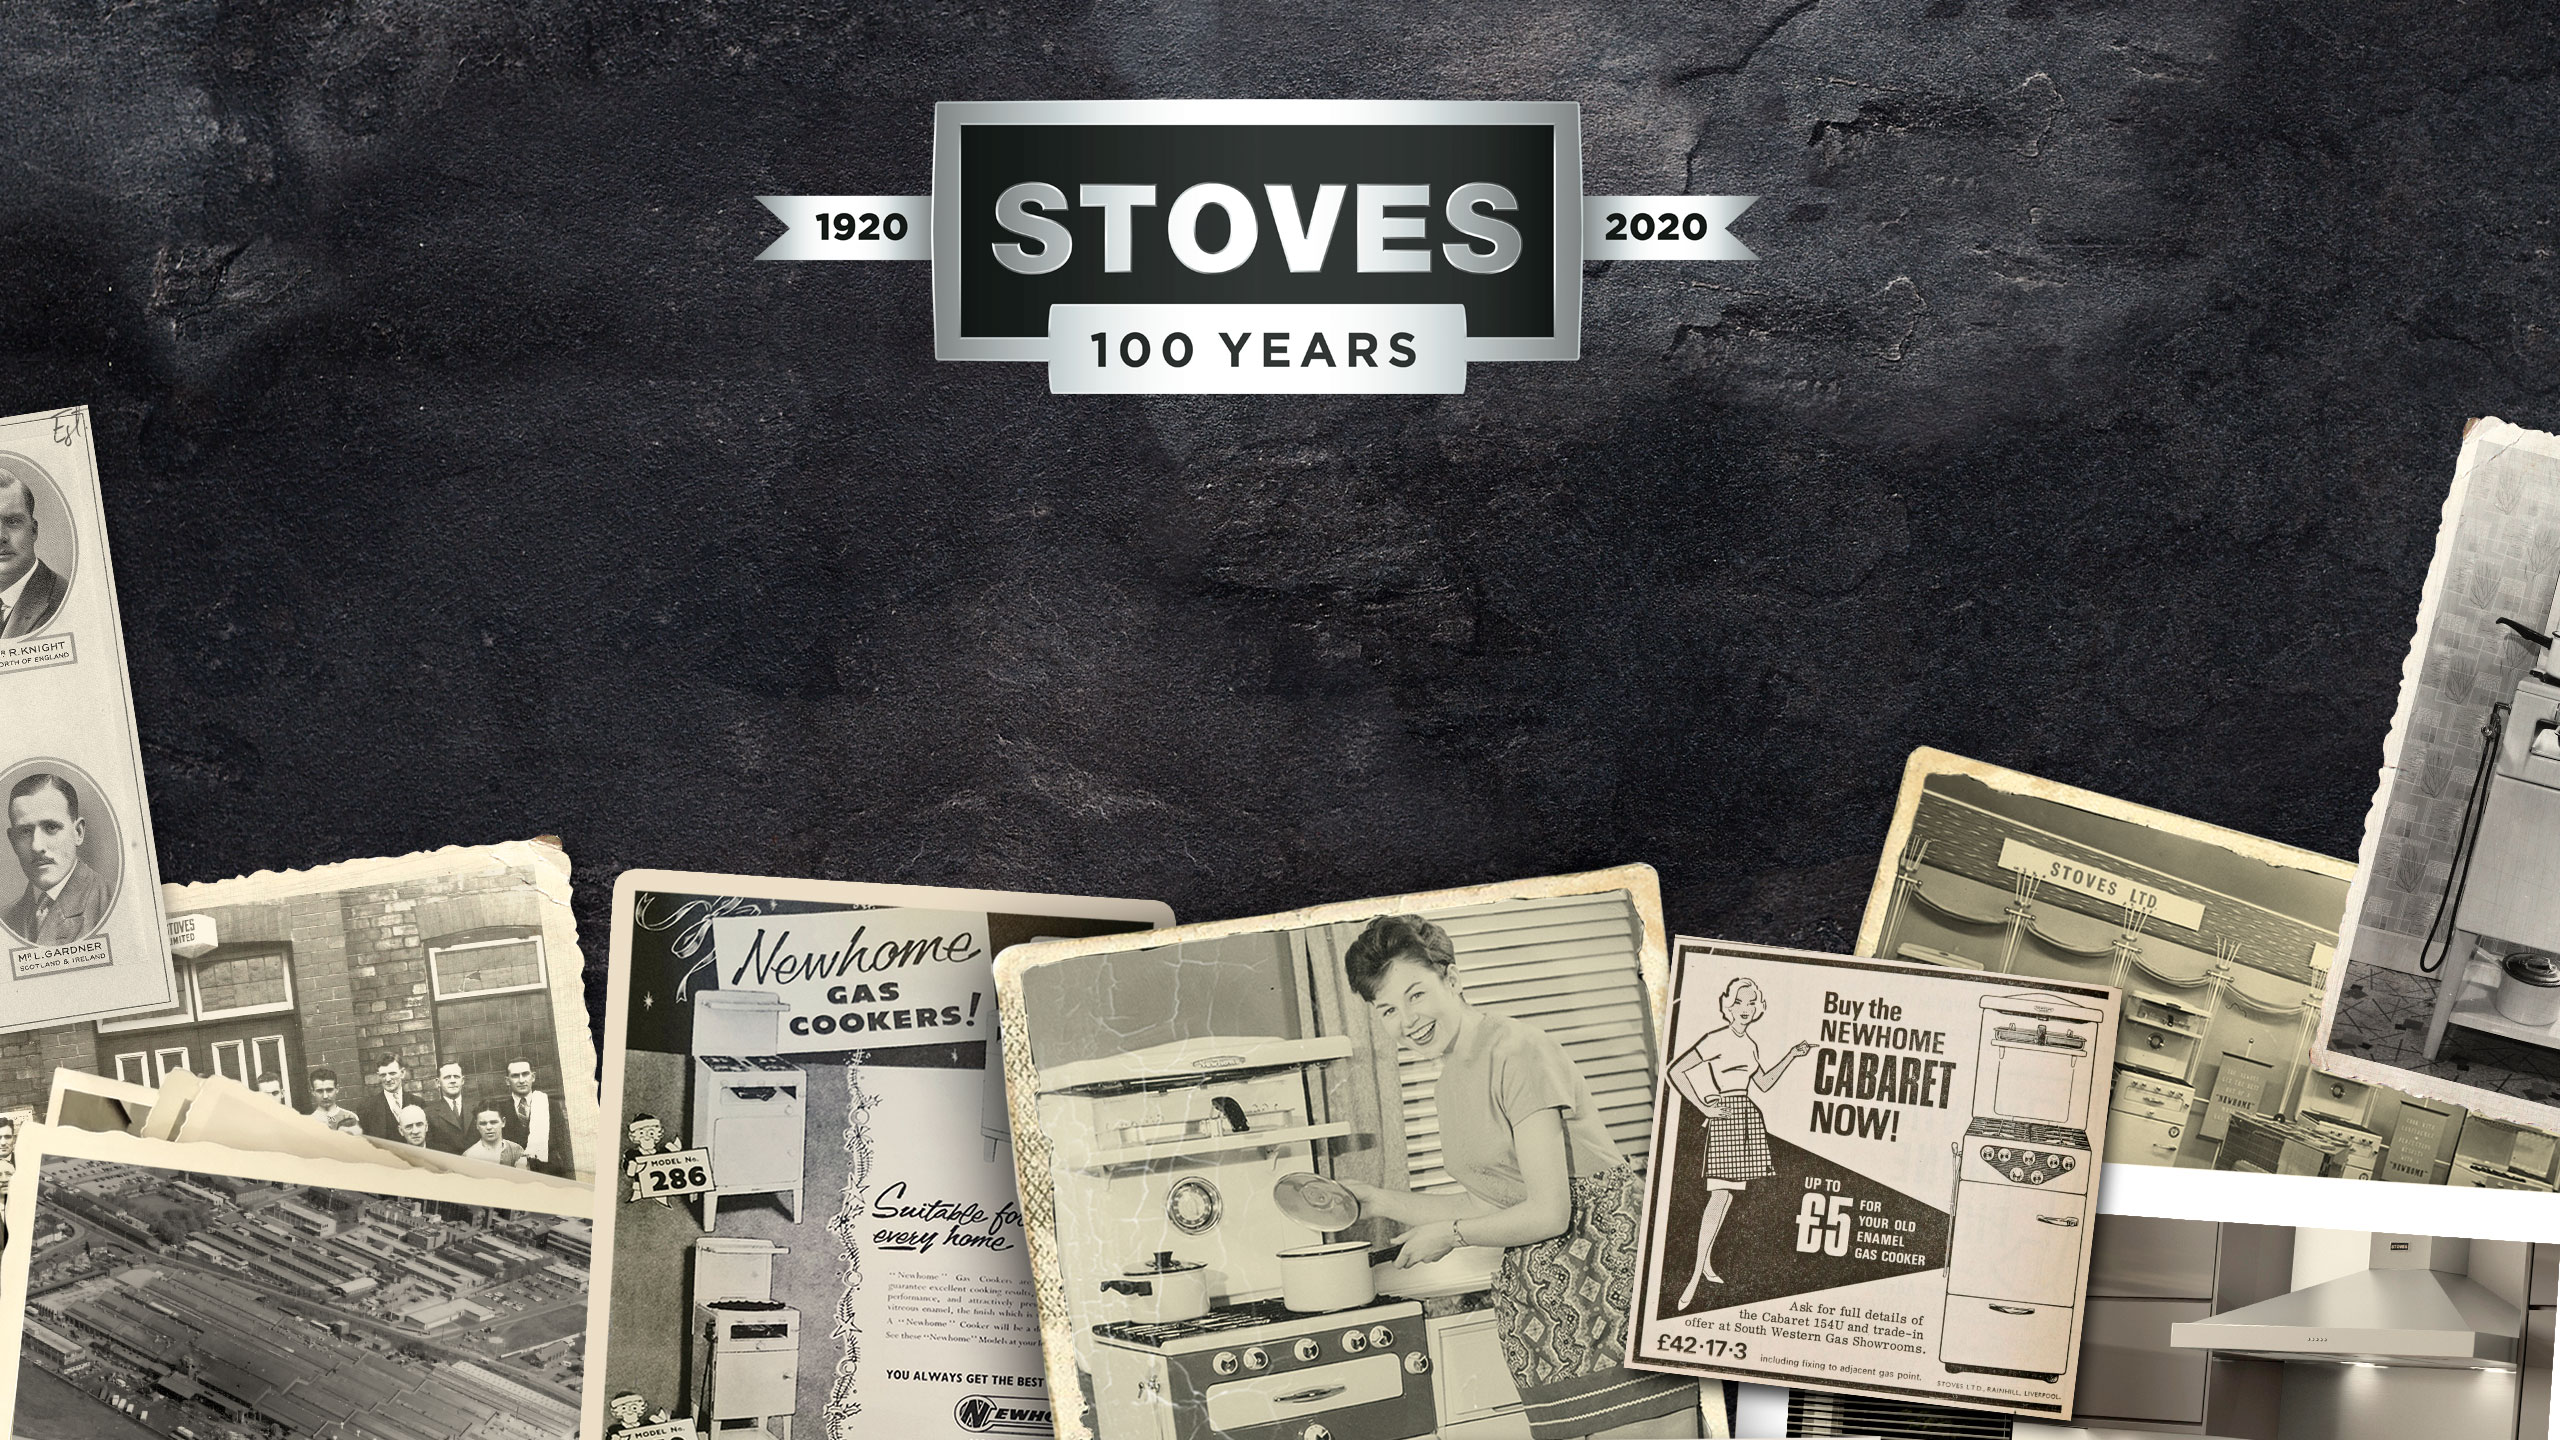 Stoves Centenary